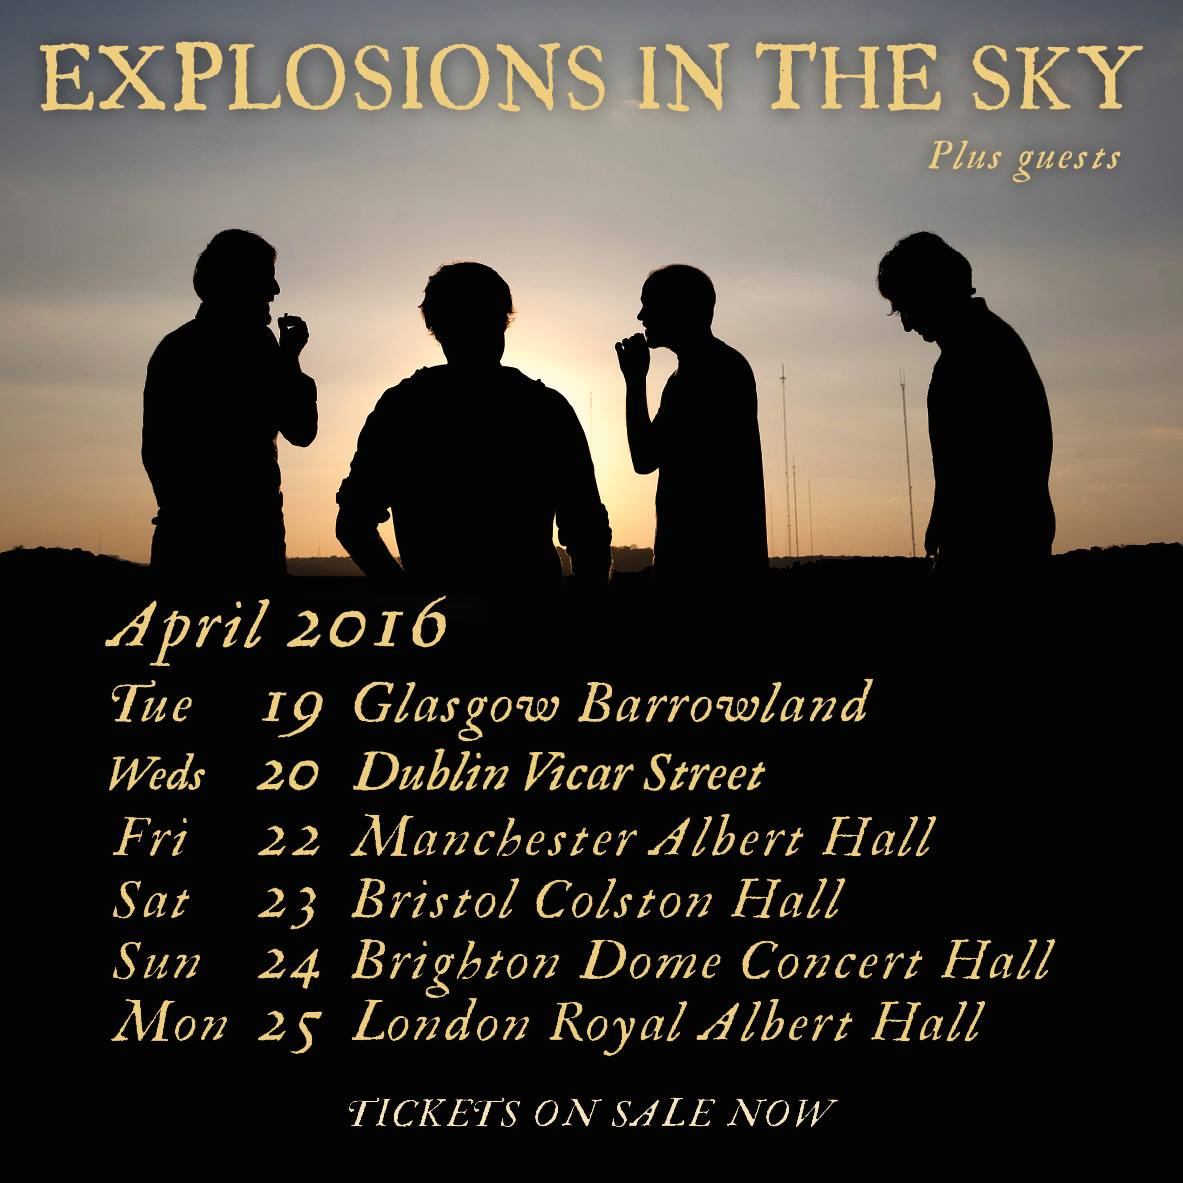 Explosions in the Sky - UK and Ireland April Tour - 2016 Tour Poster